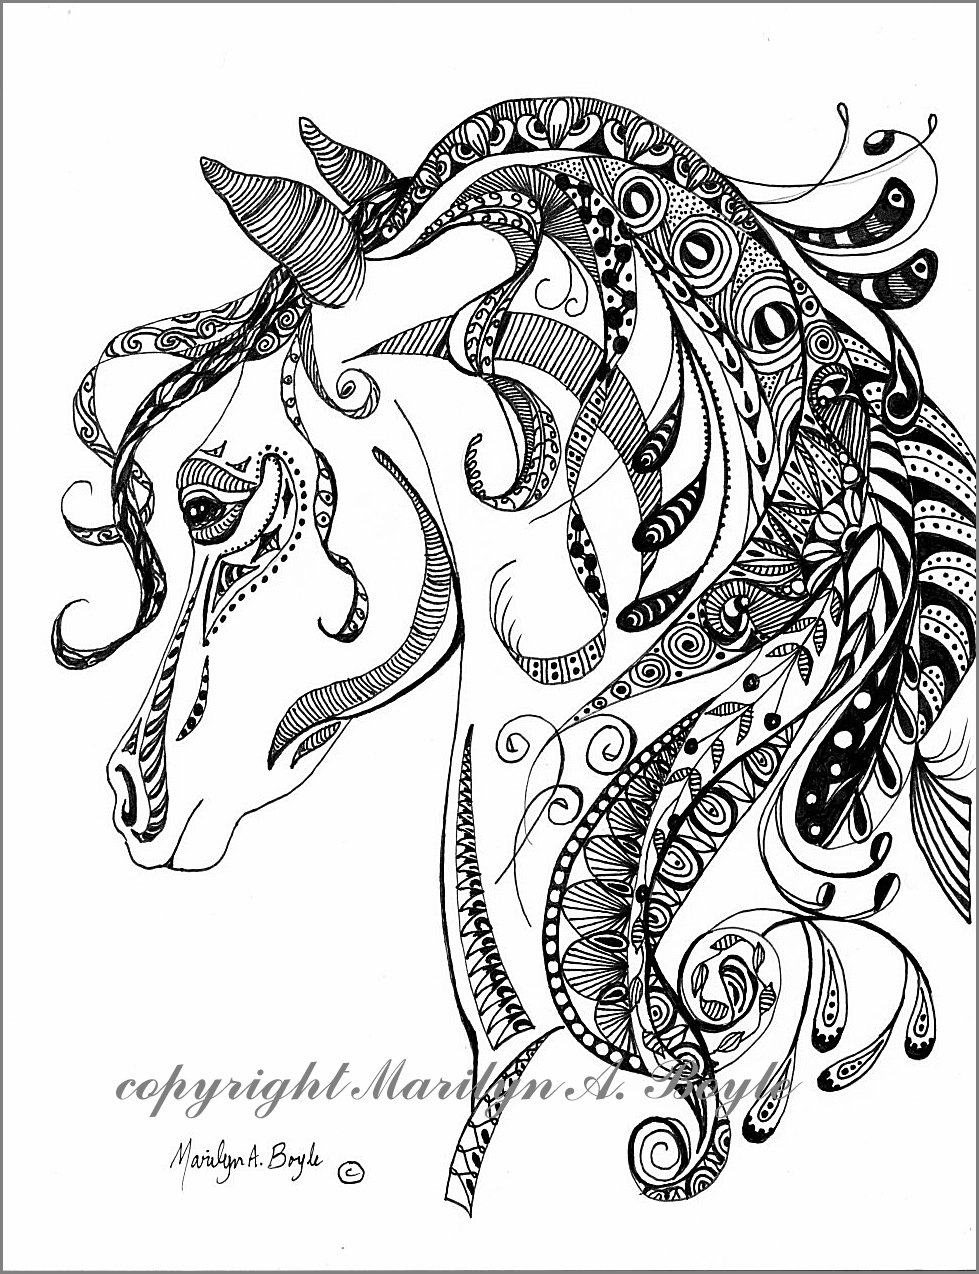 979x1274 Original Ink Drawing Zentangle, Doodle, Art, Pen And Ink, Black